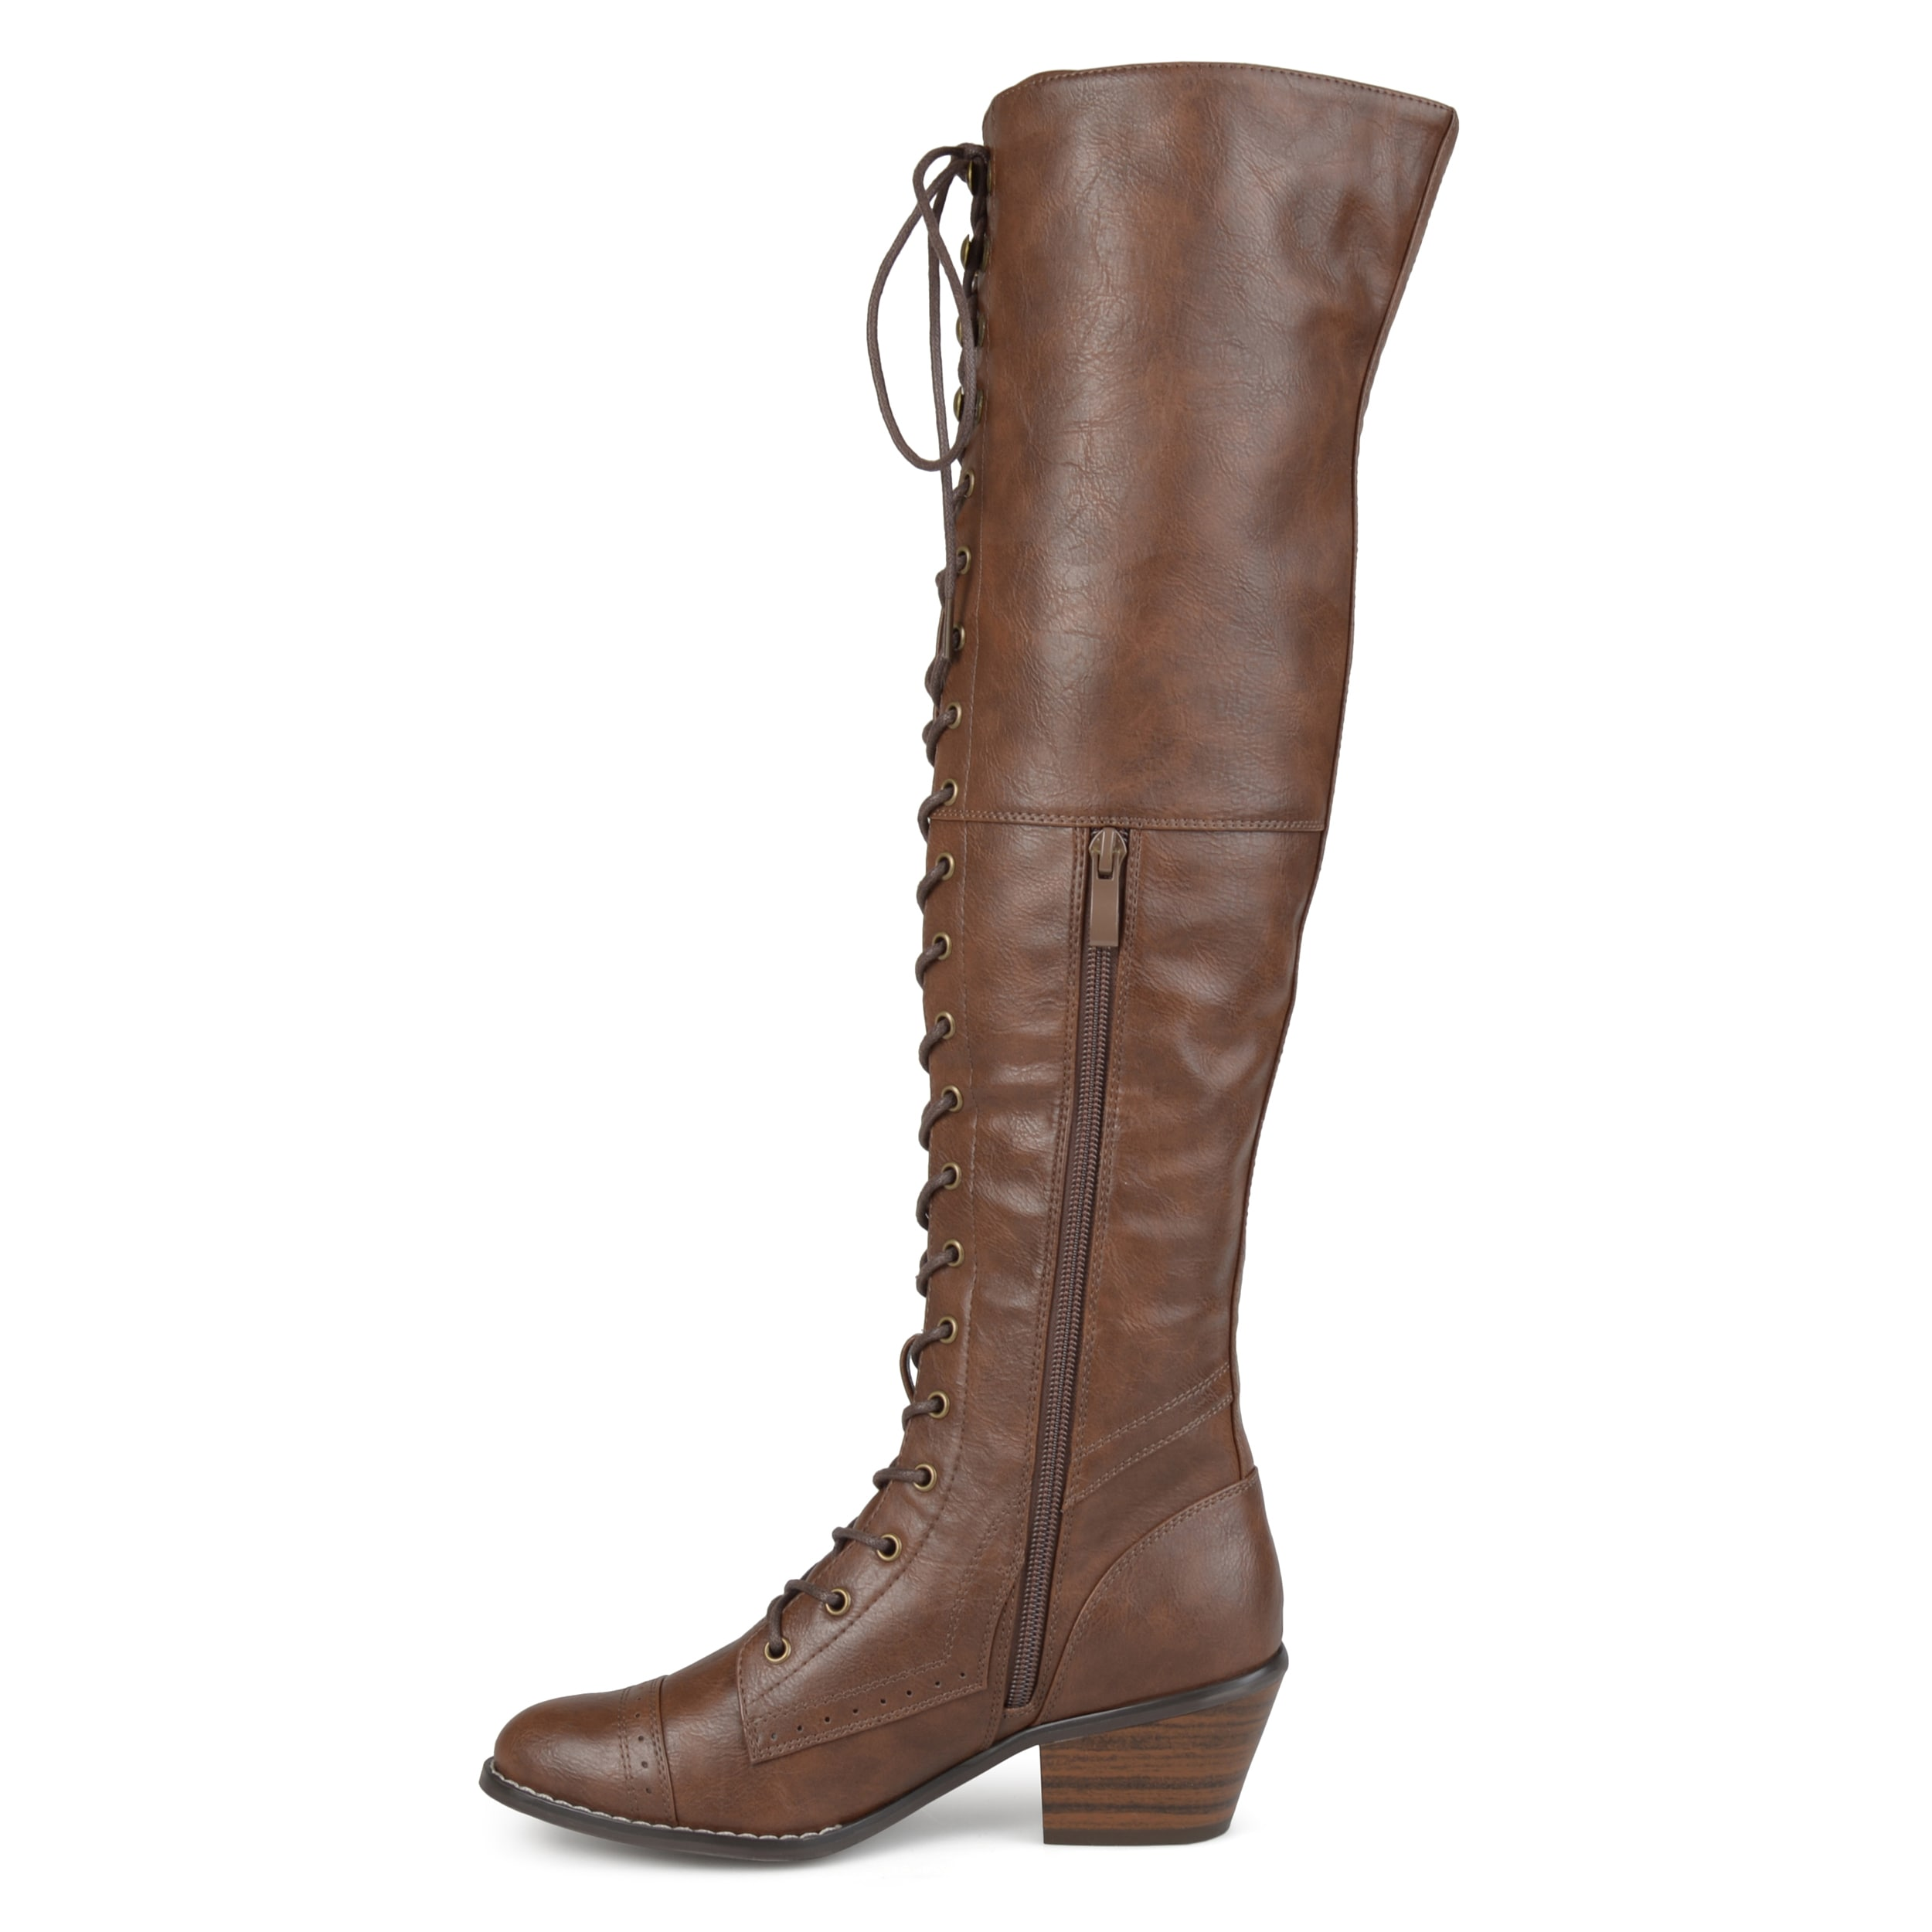 180e89444e9 Shop Journee Collection Women s  Bazel  Regular and Wide Calf Brogue Lace-up  Over-the-knee Boots - Free Shipping Today - Overstock - 17351910